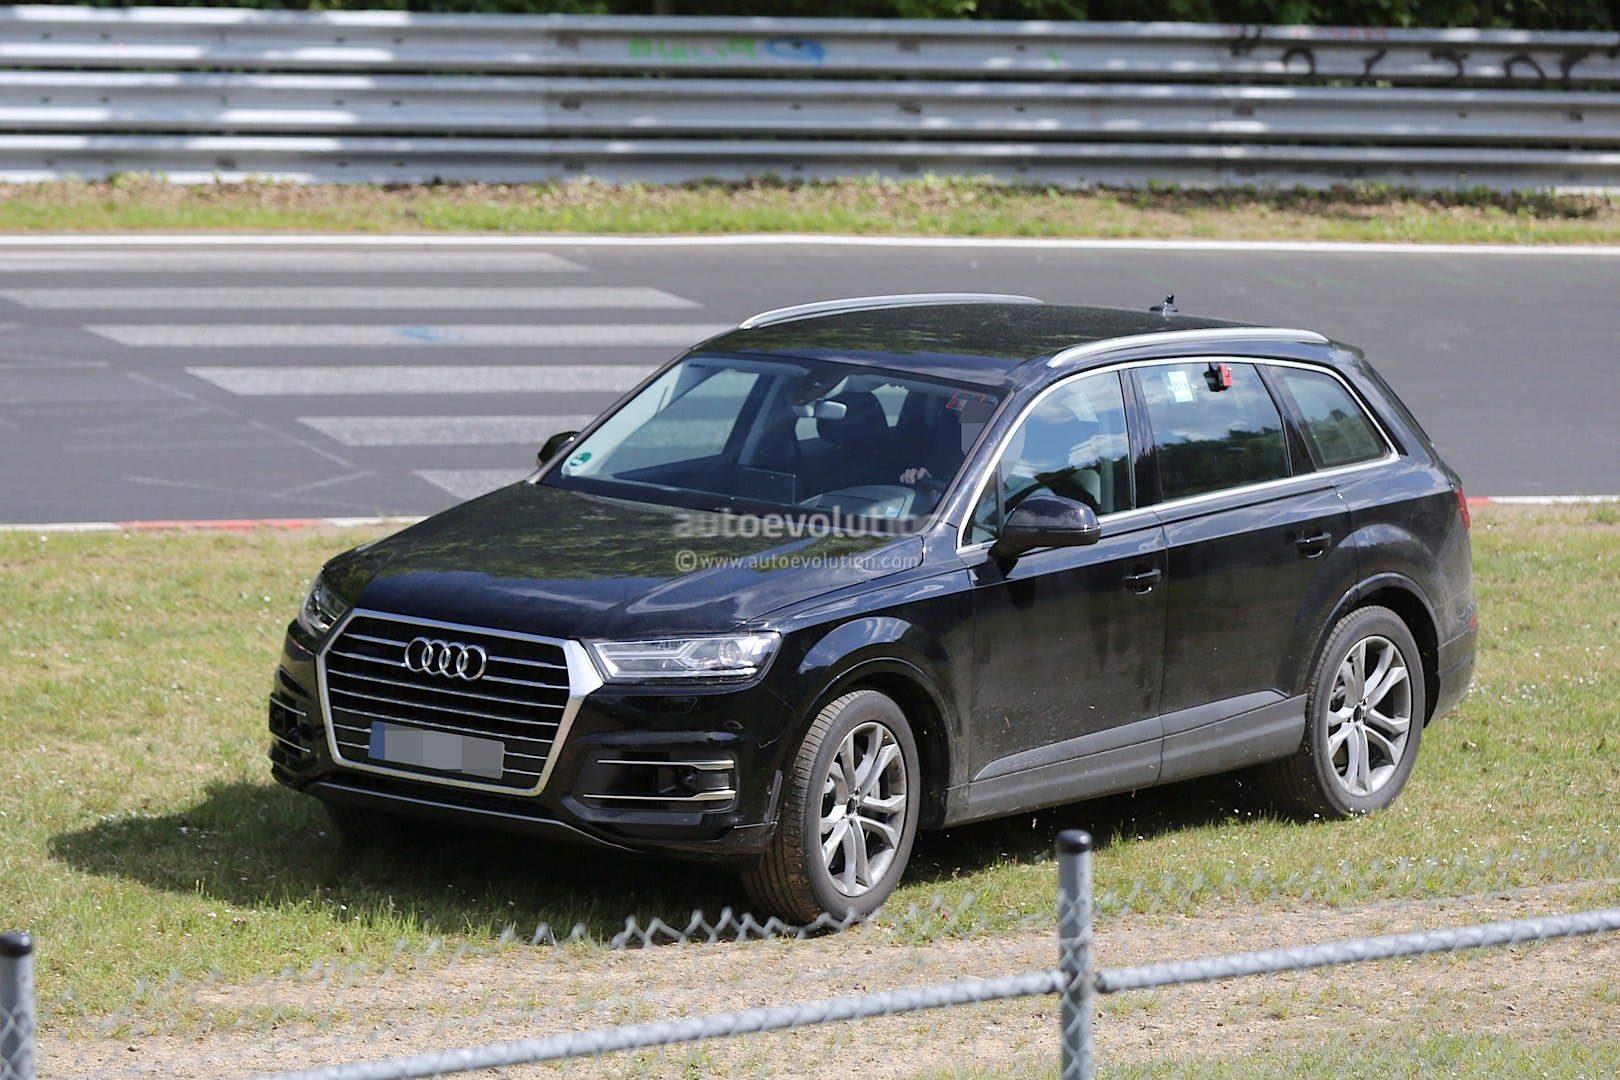 2016 Audi SQ7 Spied Inside and Out, Shows Off On the Test ...